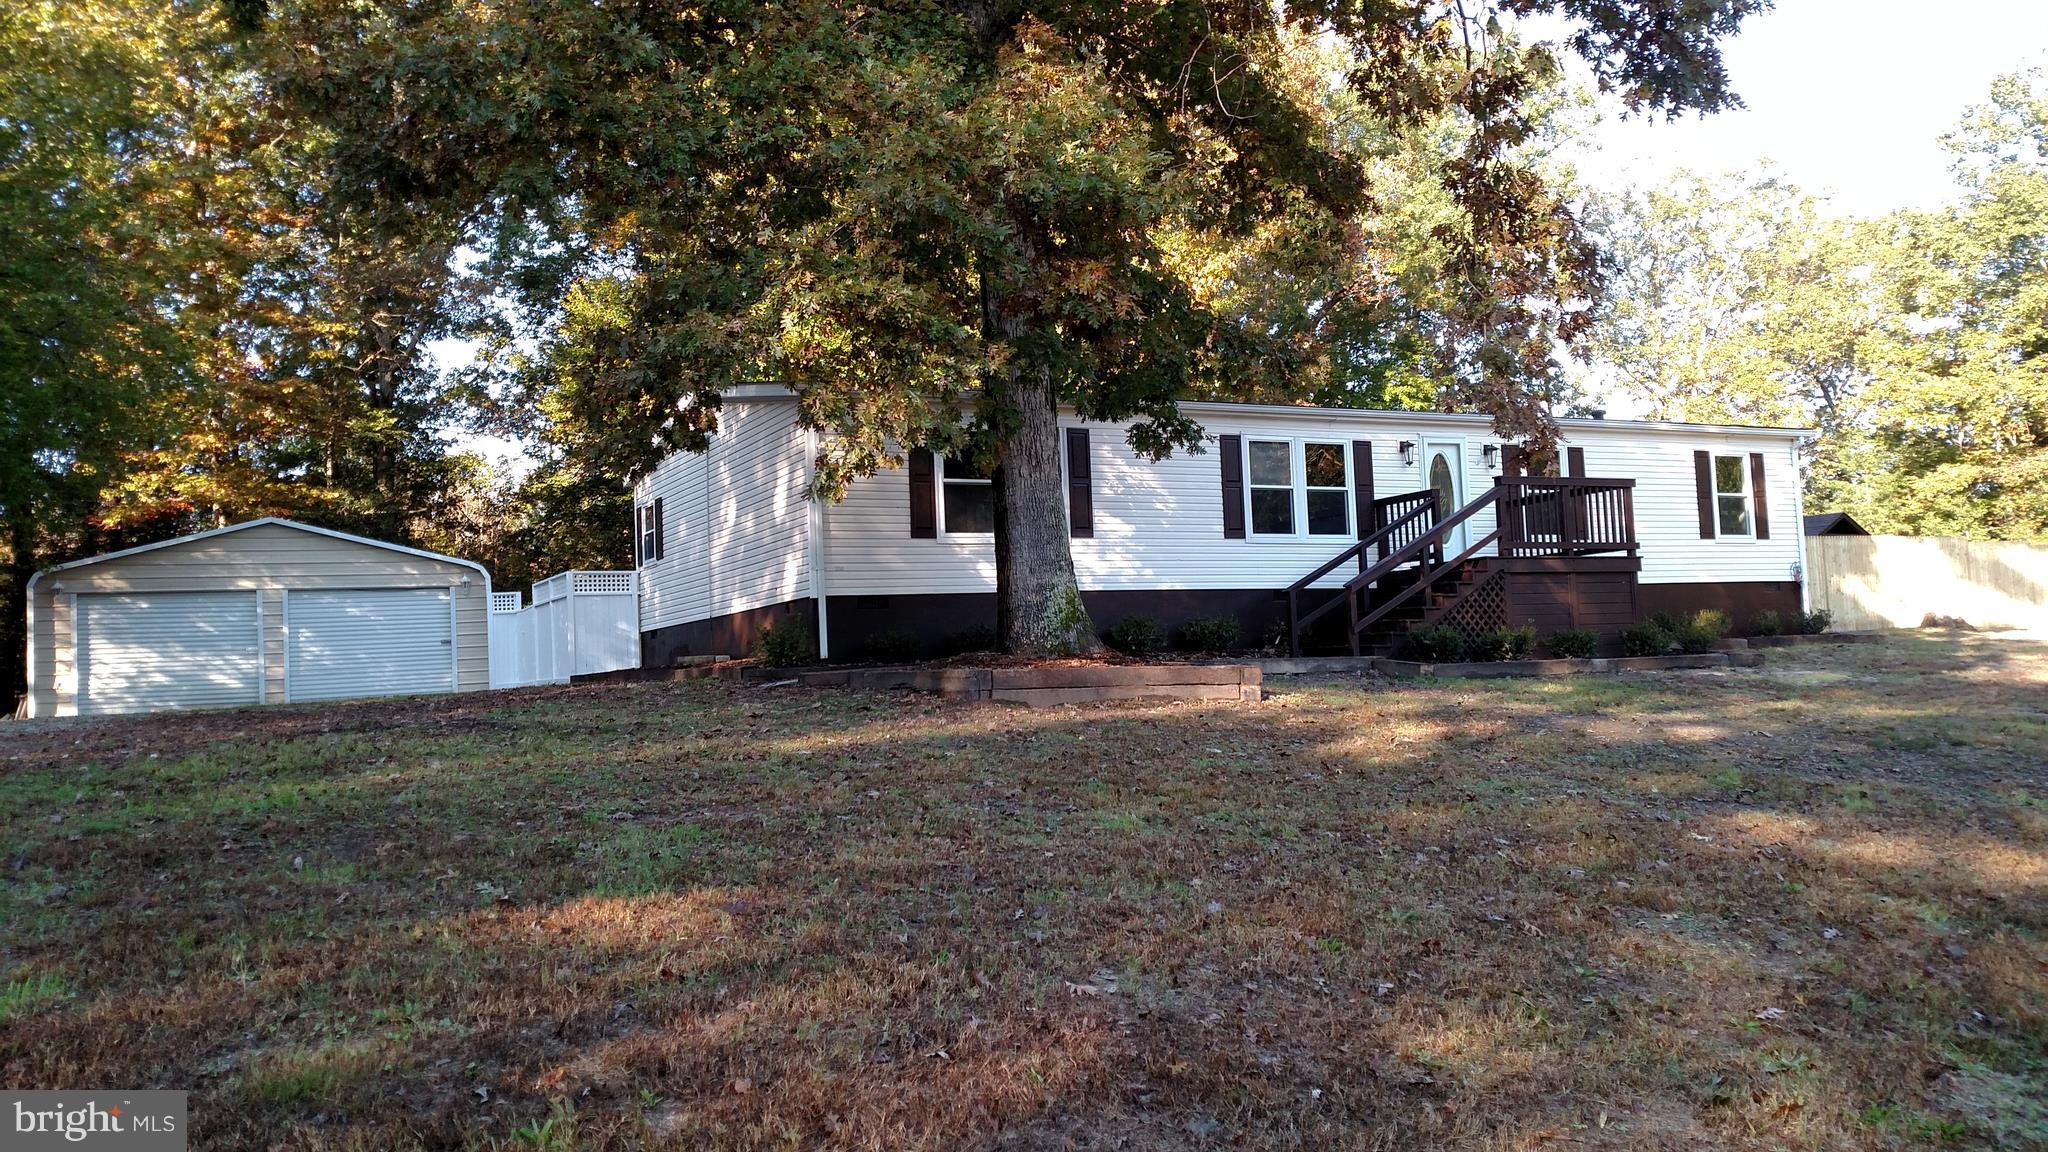 18460 PASSING ROAD, MILFORD, VA 22514